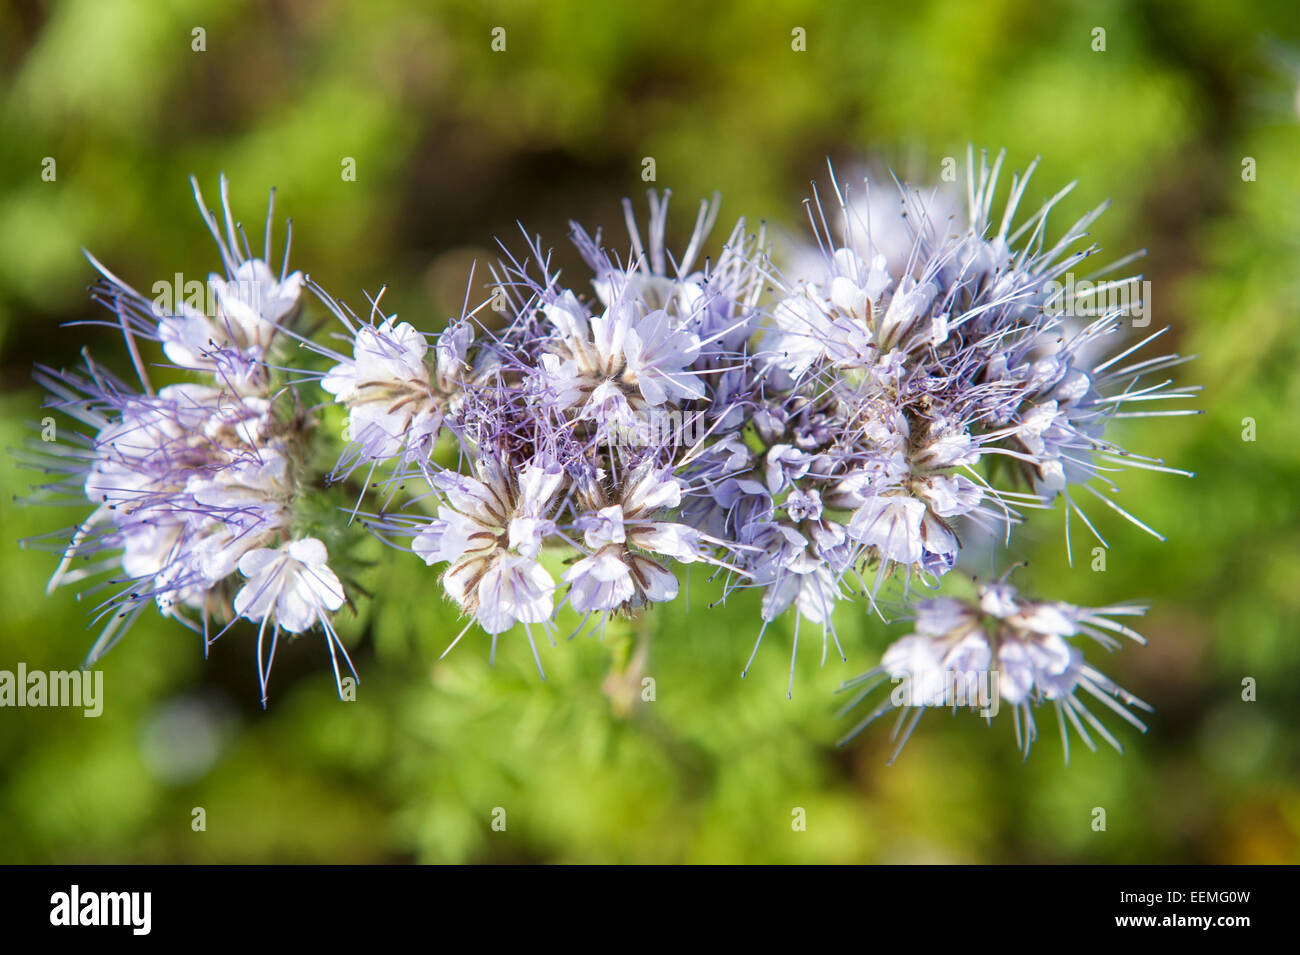 Lila wildflower in close up against green foliage background Stock Photo